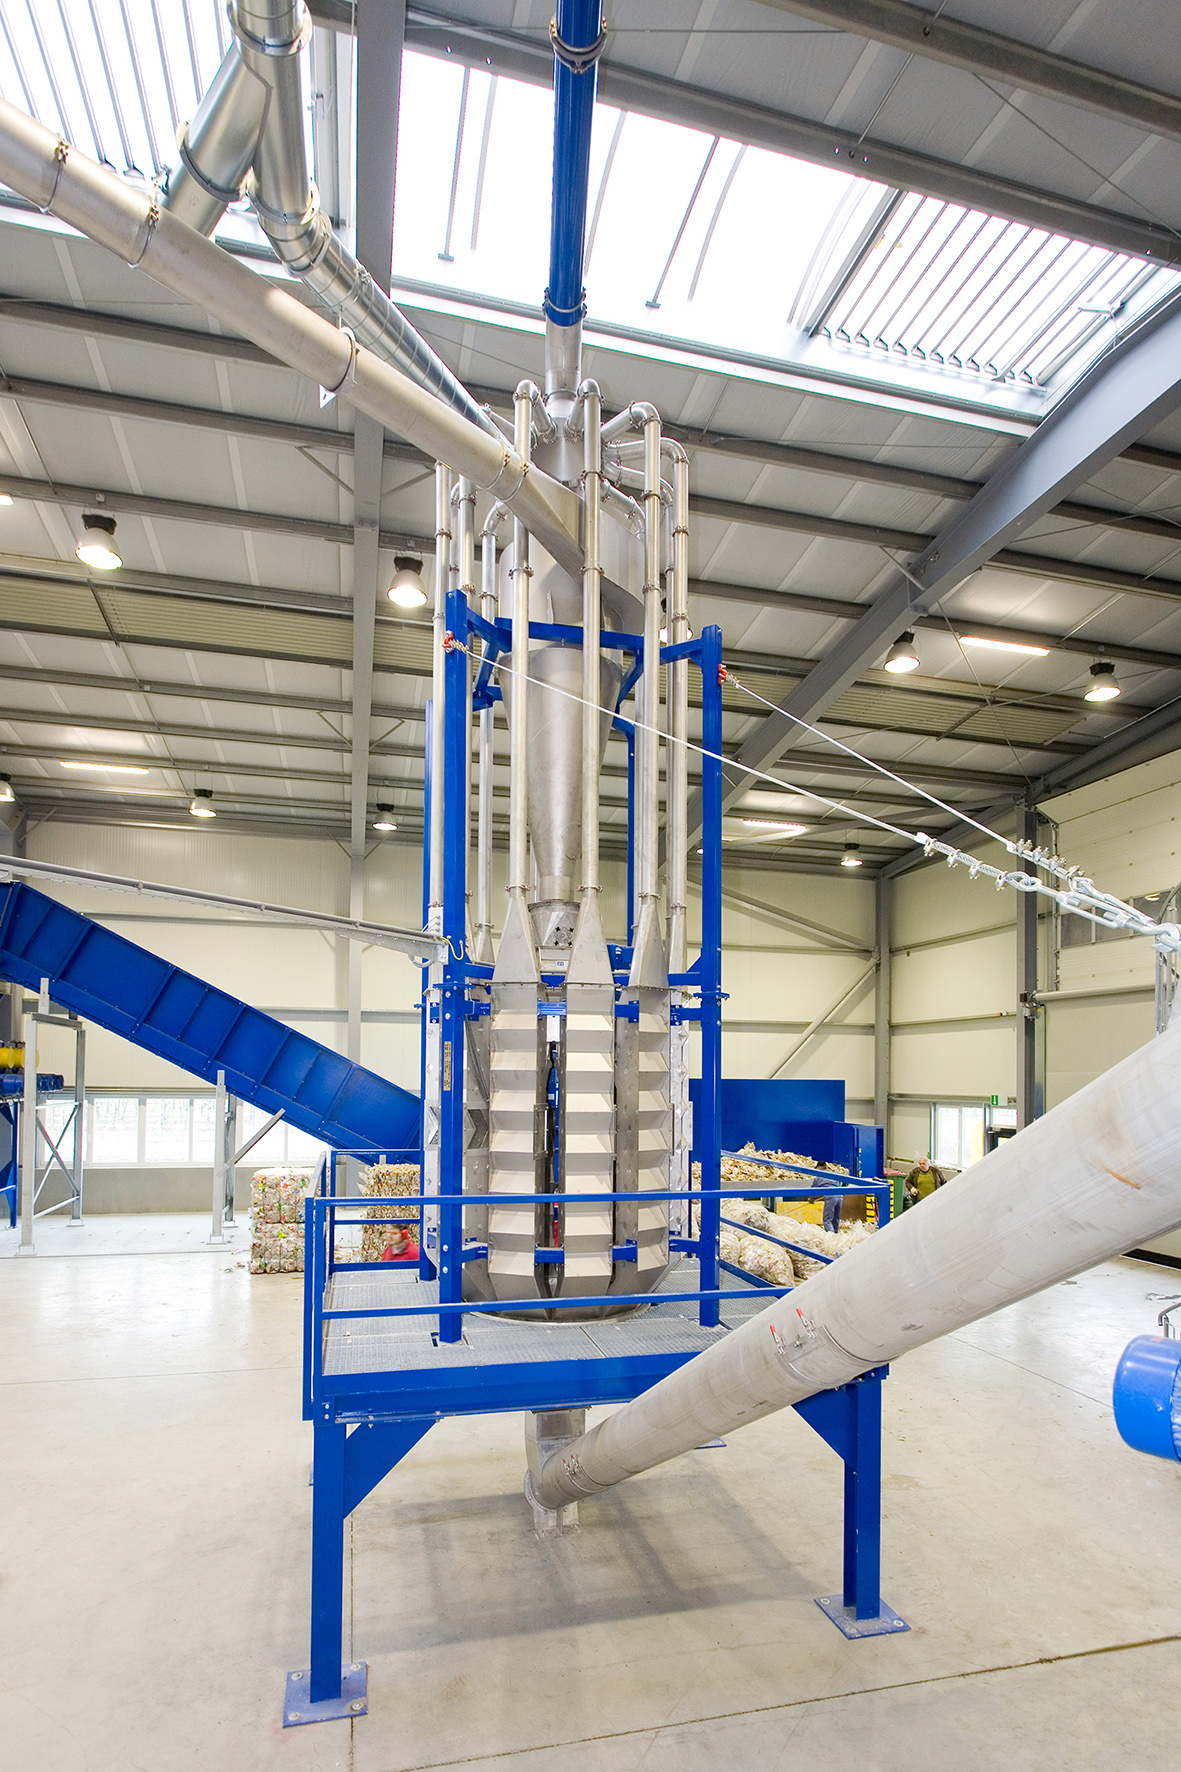 air classifier to remove contaminants